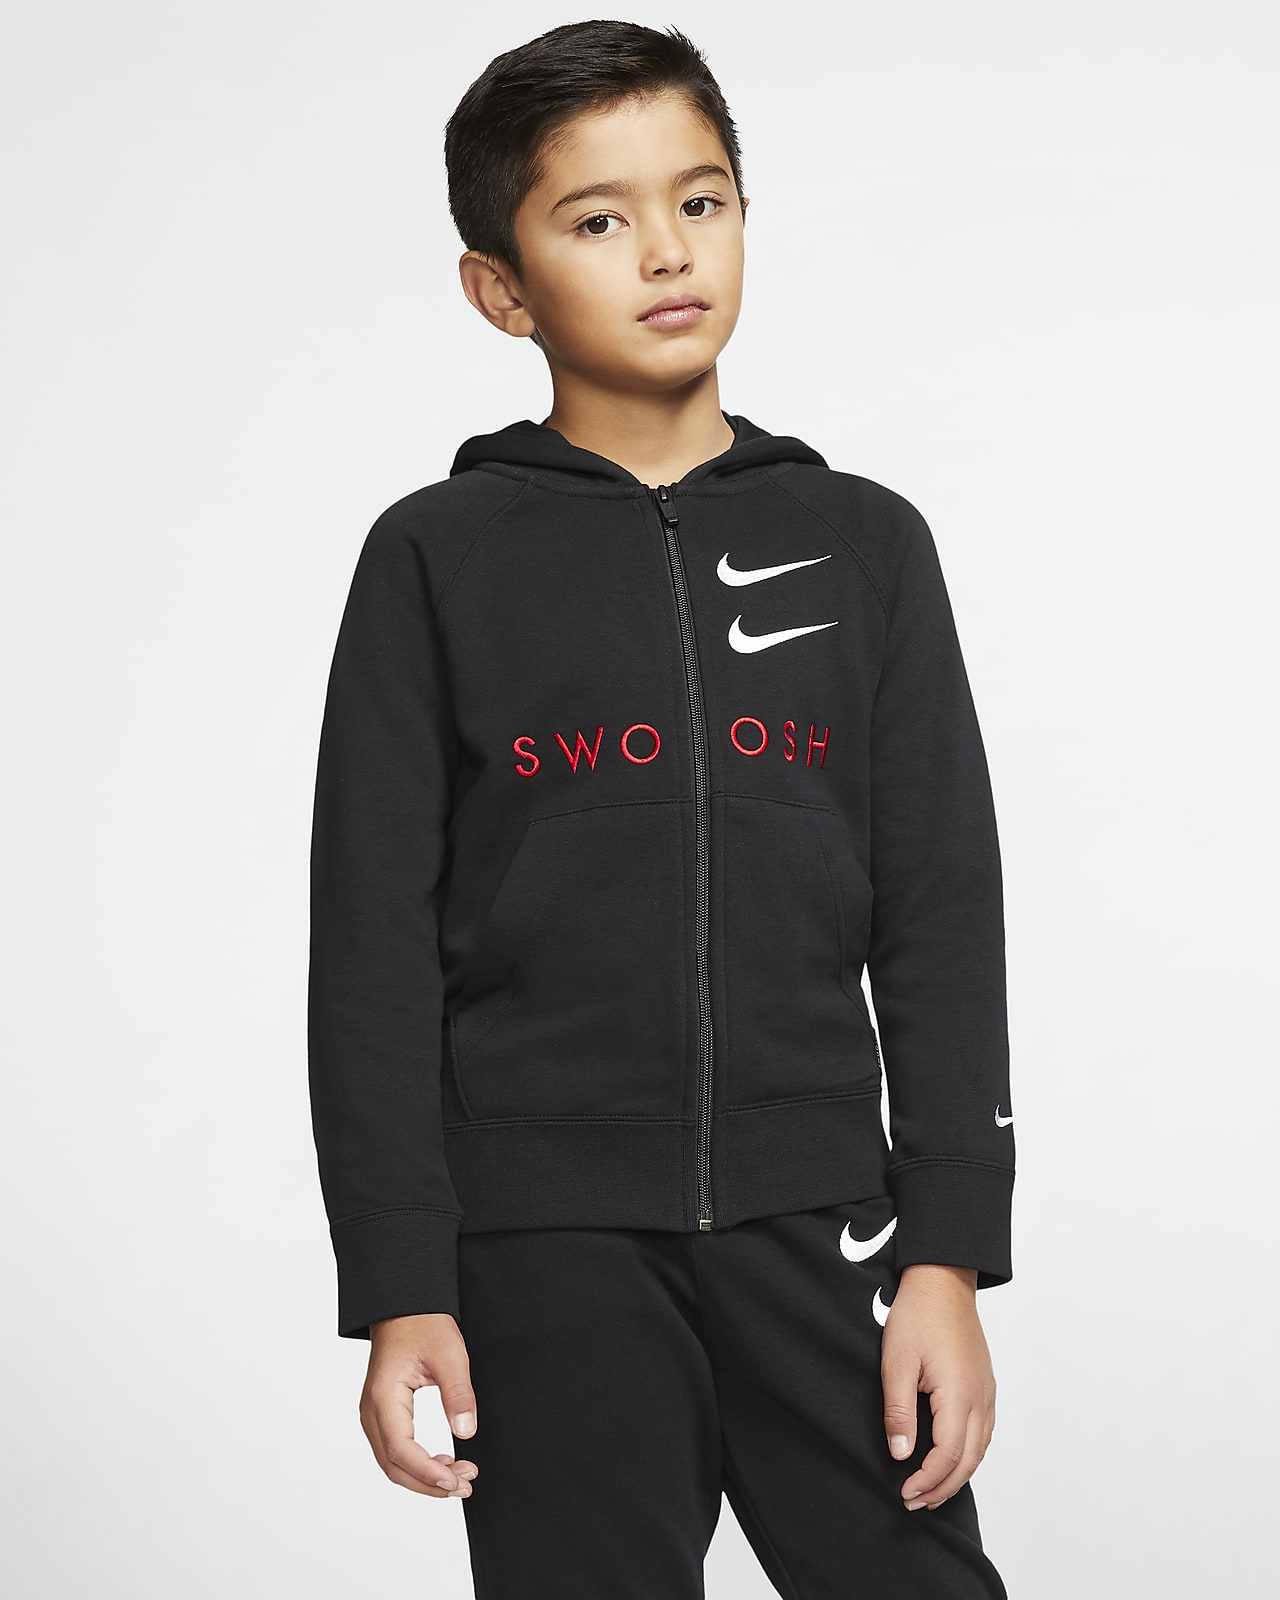 Nike Sportswear Swoosh Older Kids' (Boys') Full-Zip French Terry Hoodie